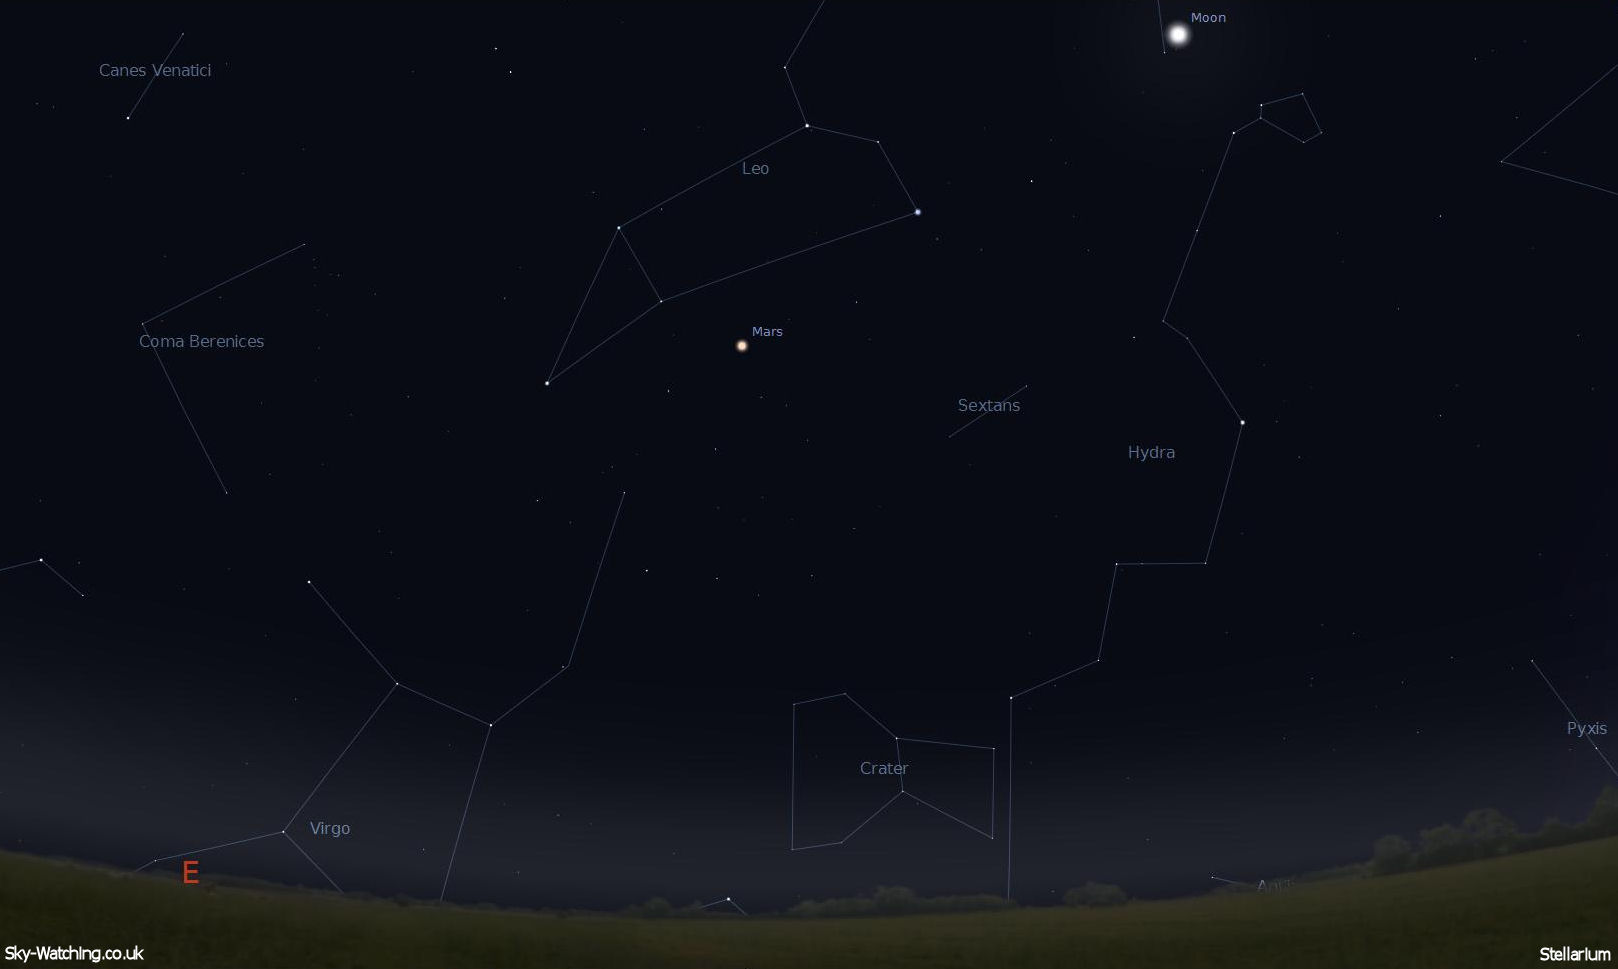 Astronomy Night Sky Watch (page 3) - Pics about space